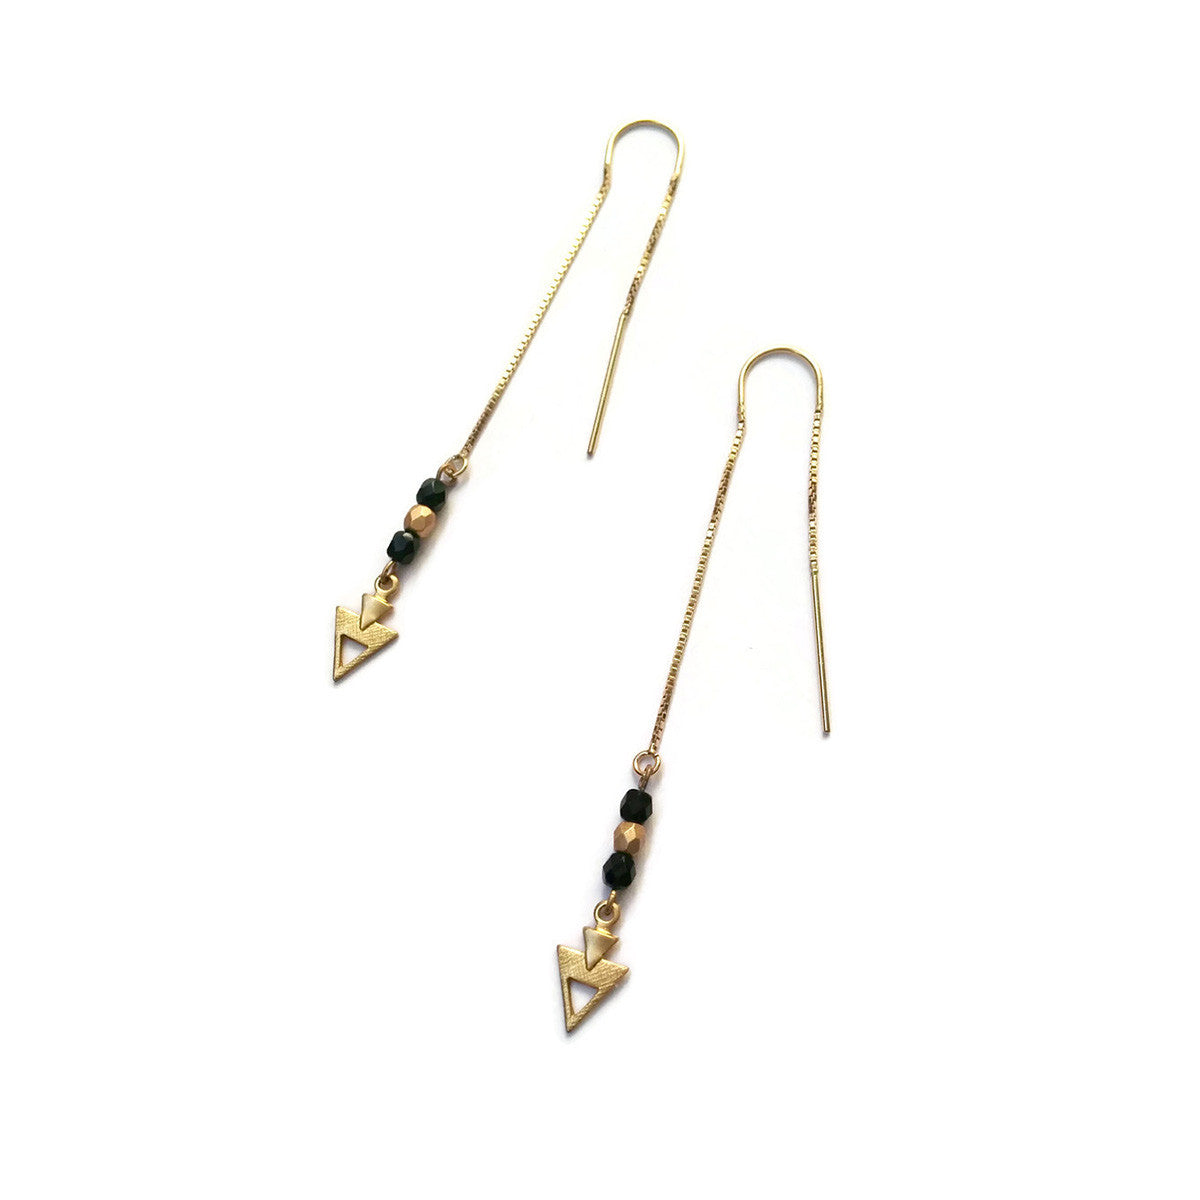 Black and gold threader earrings with small arrows